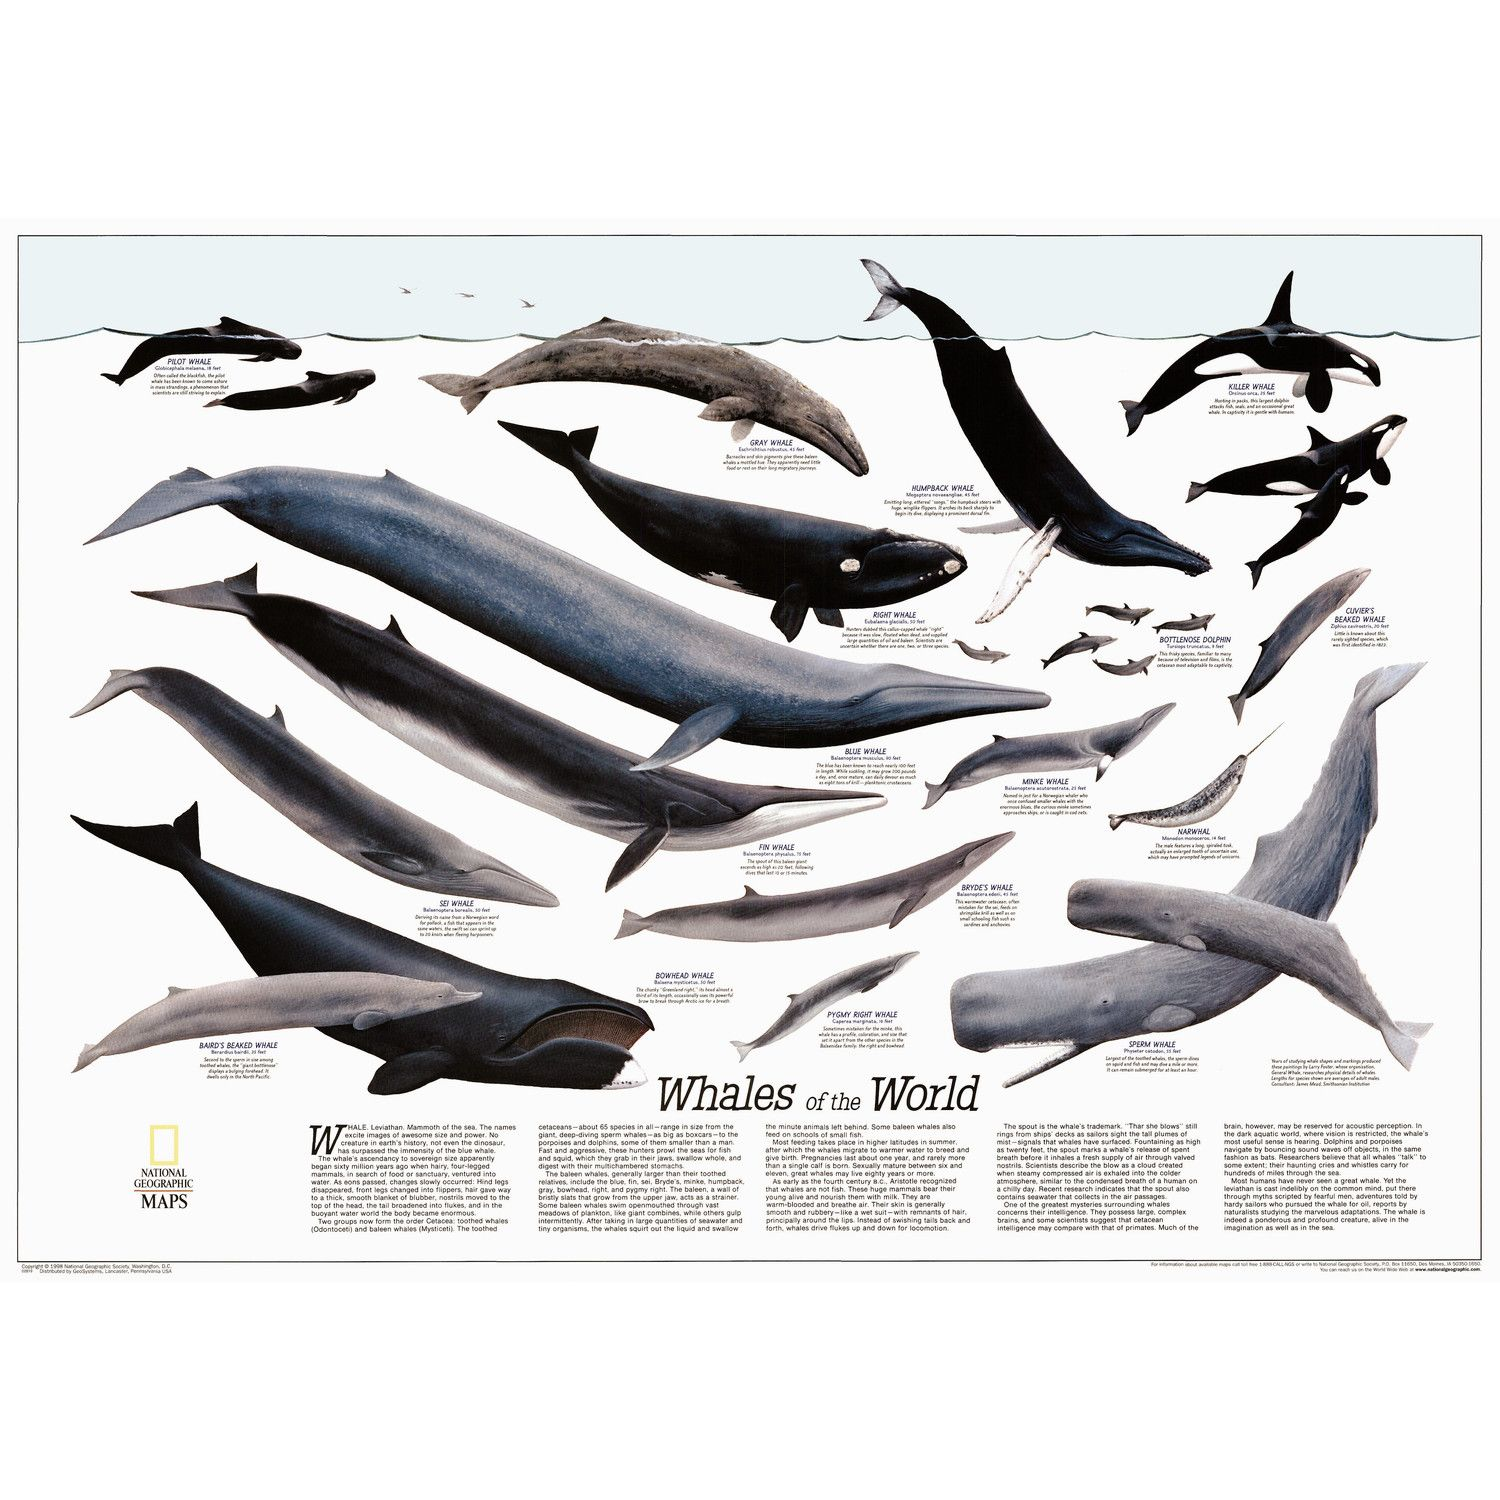 whales of the world poster map re00622012 jpg 1500 1500